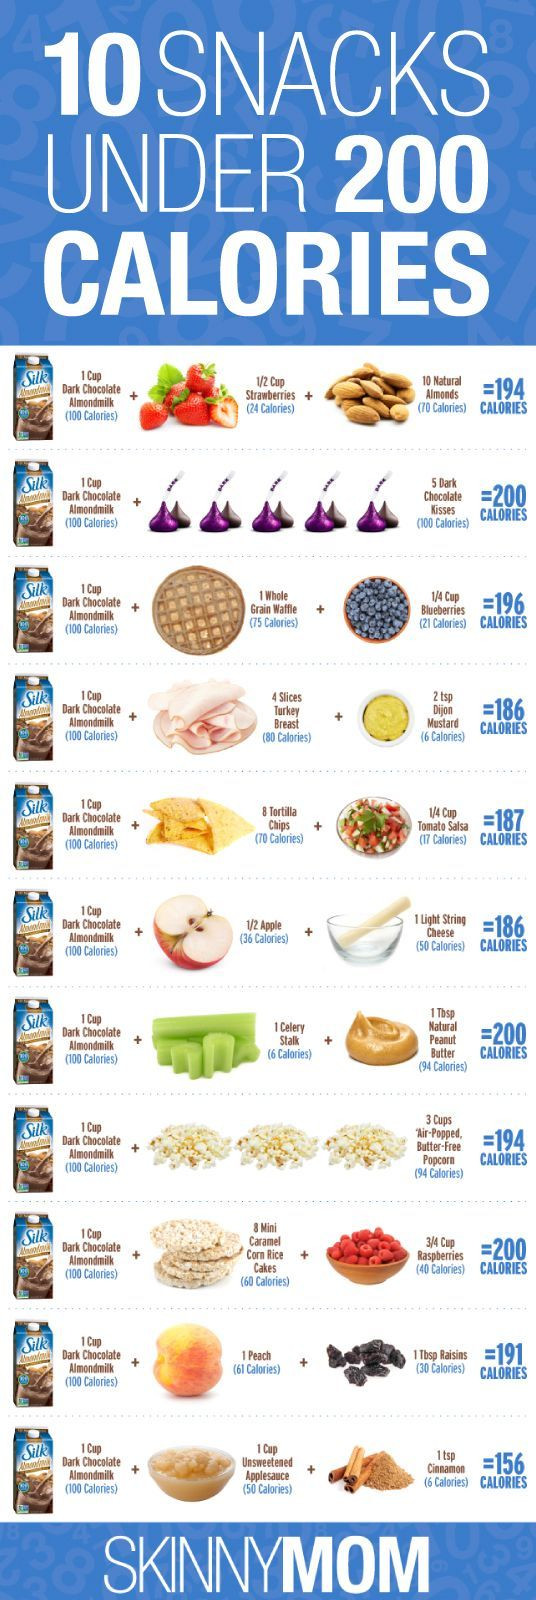 Healthy Snacks Under 100 Calories  10 Snacks Under 200 Calories s and